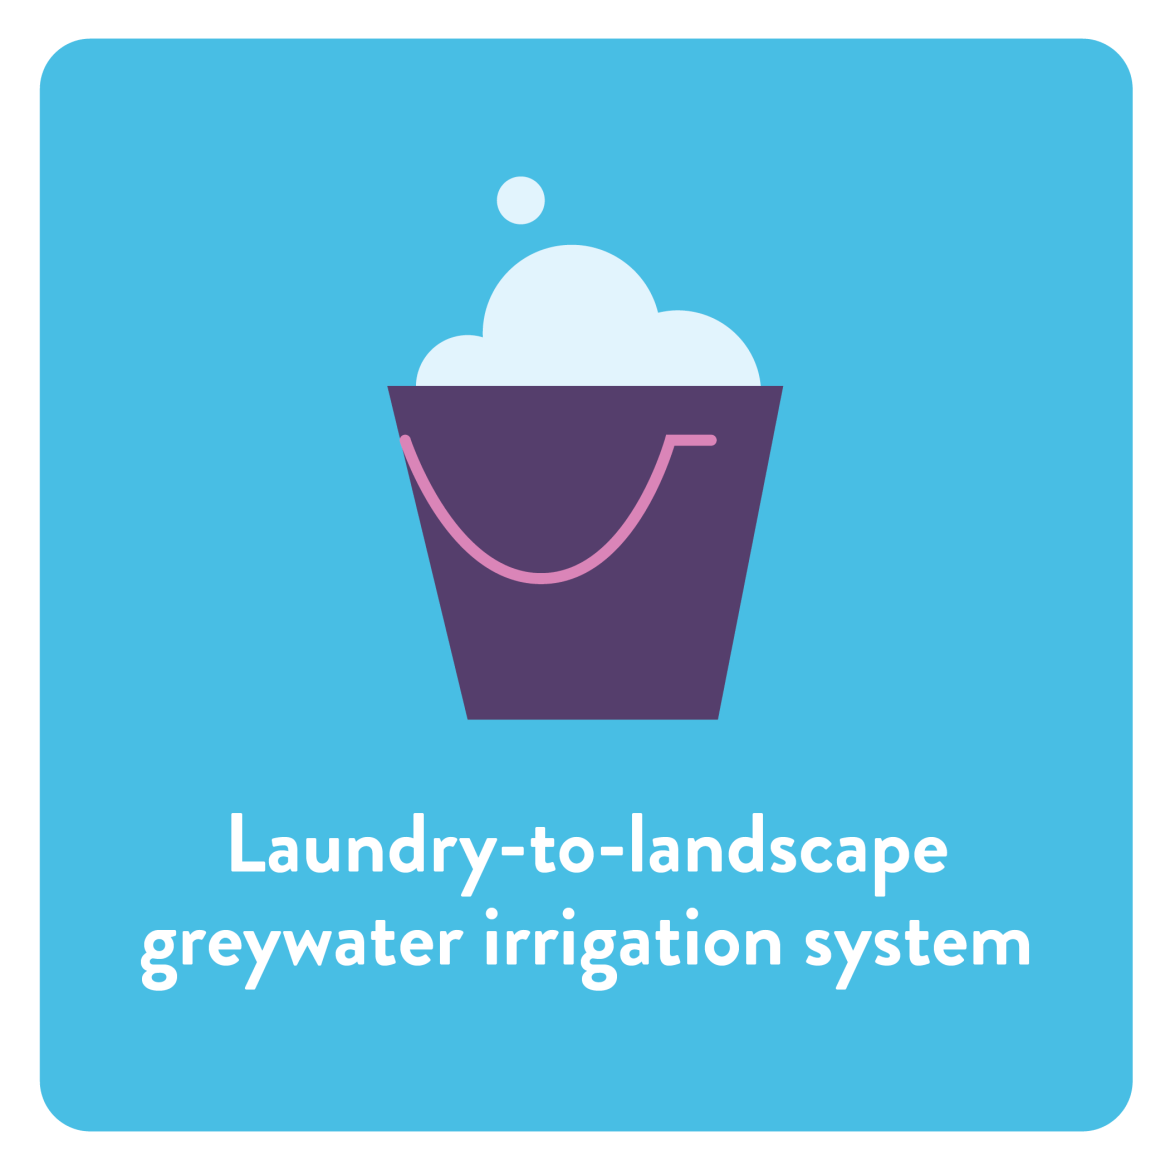 Laundry-to-landscape greywater irrigation system